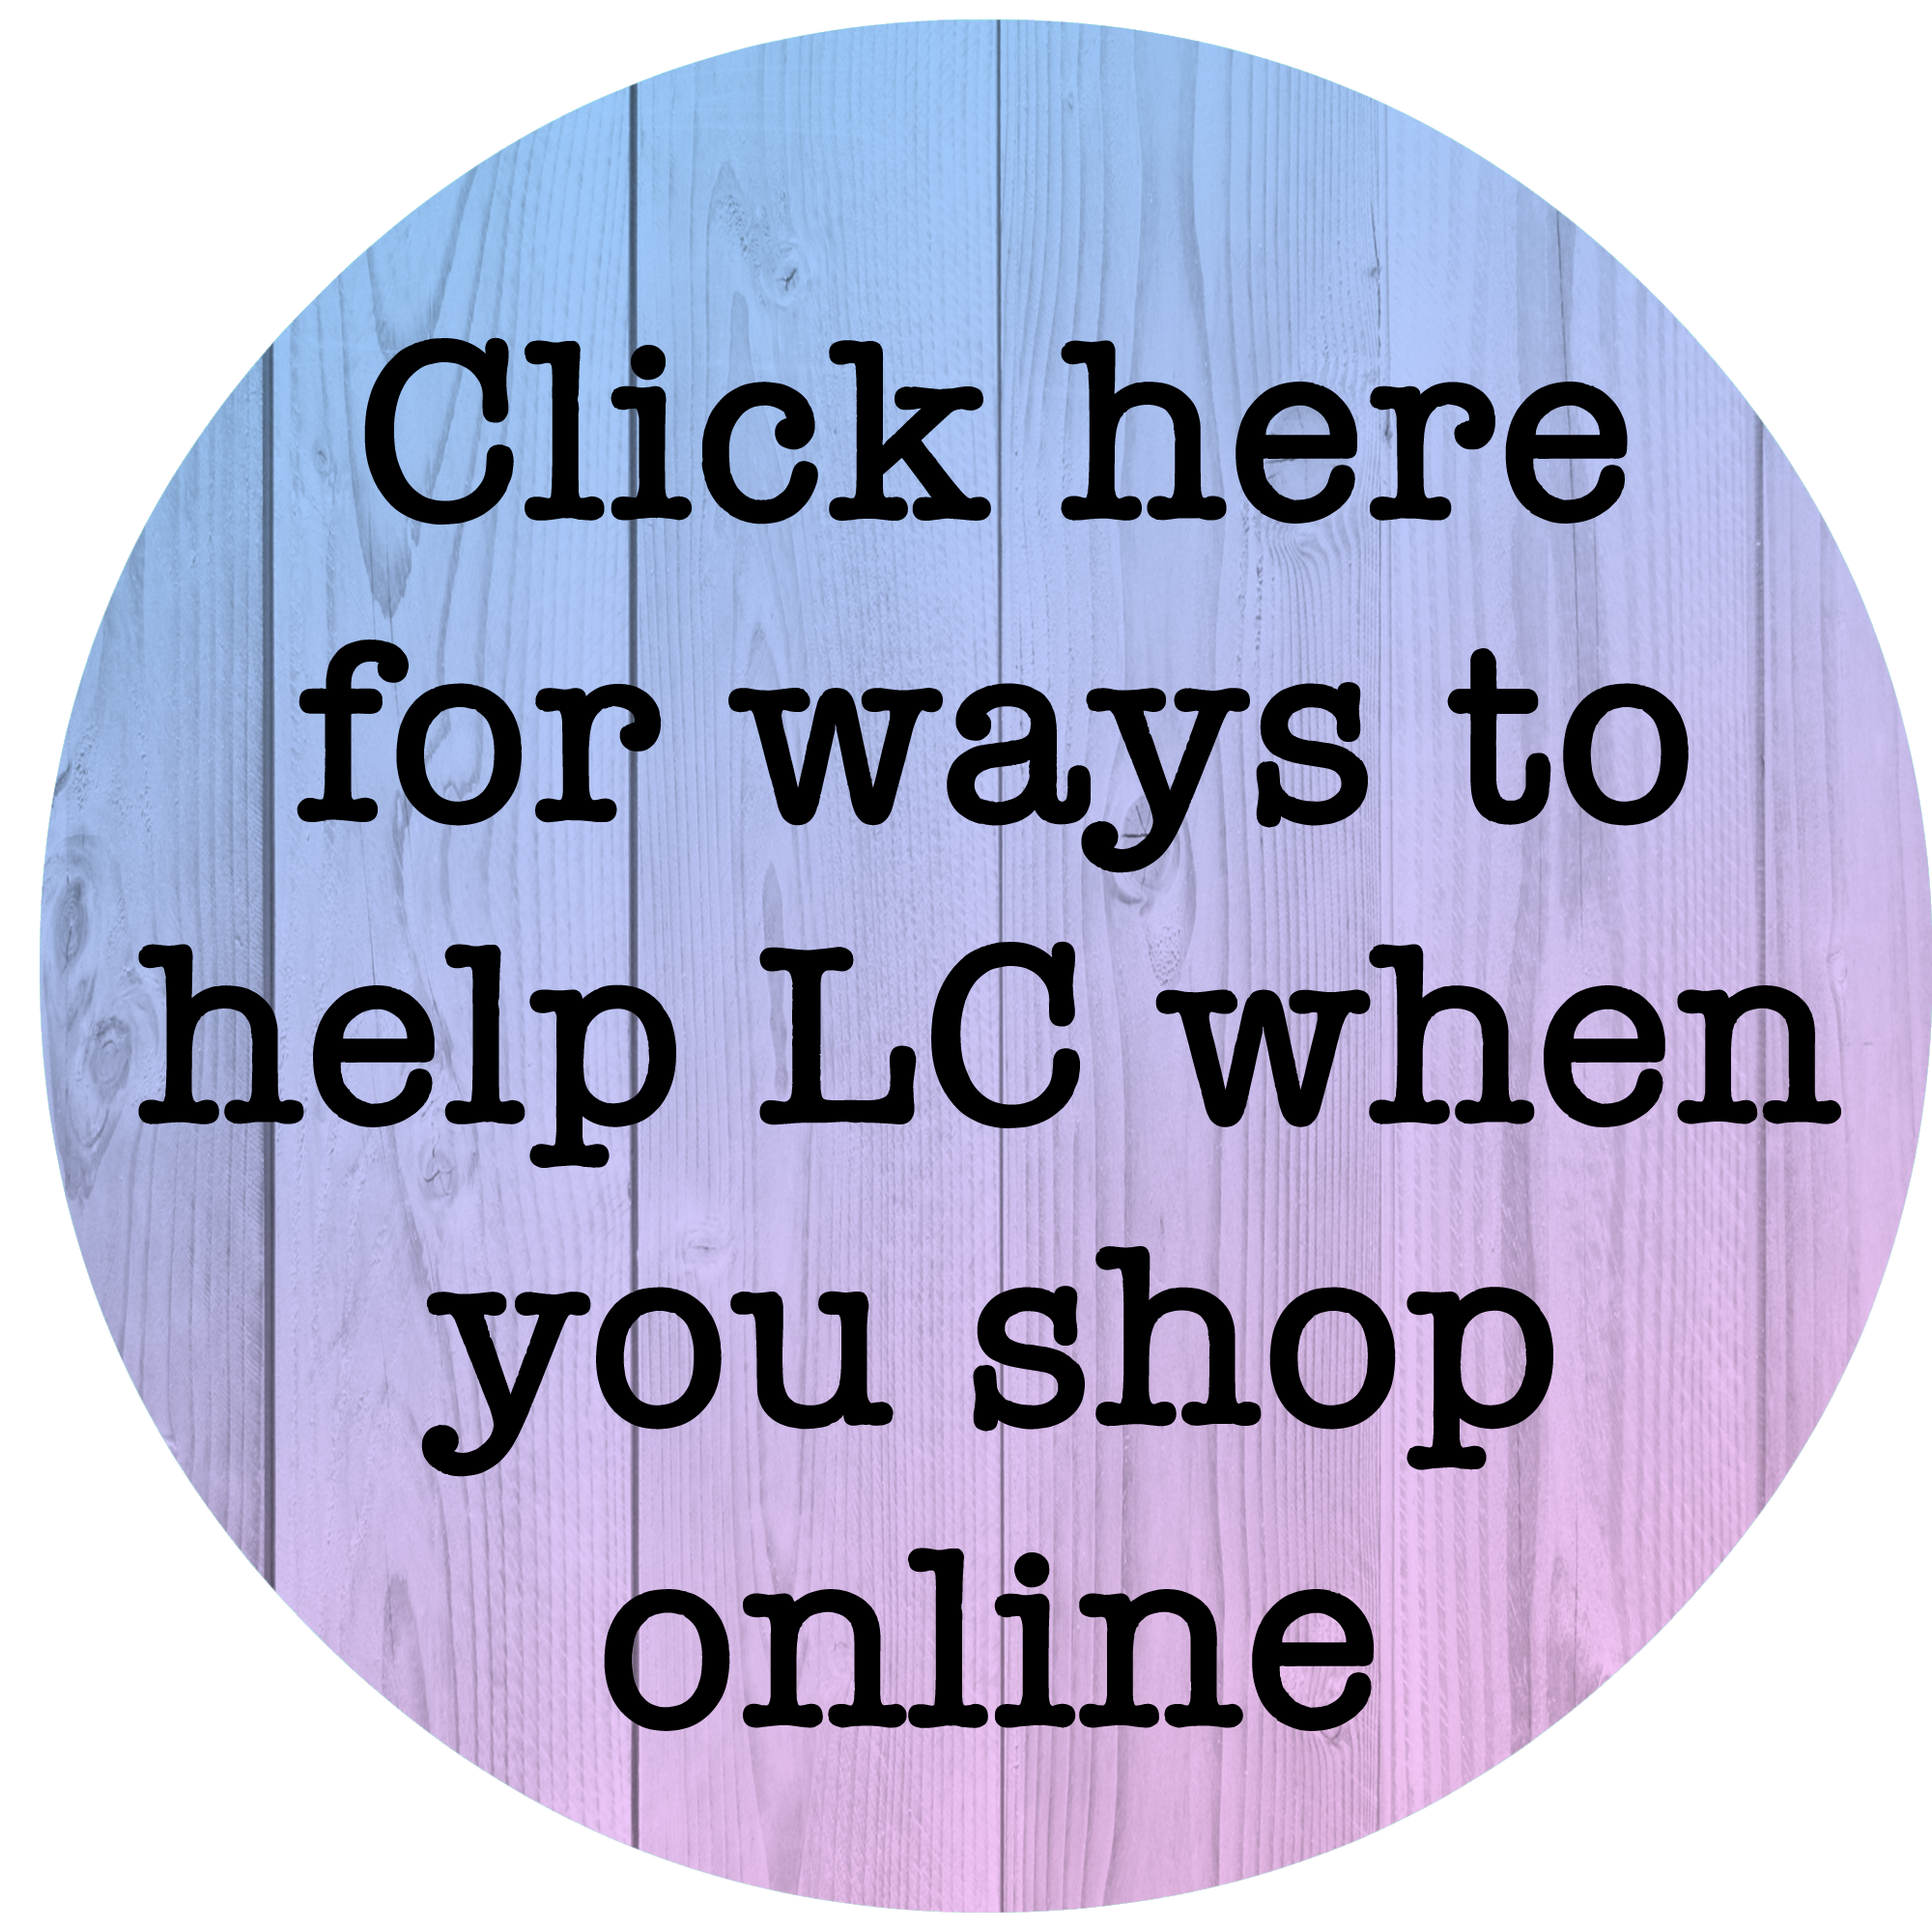 Click here for ways to help LC when you shop online